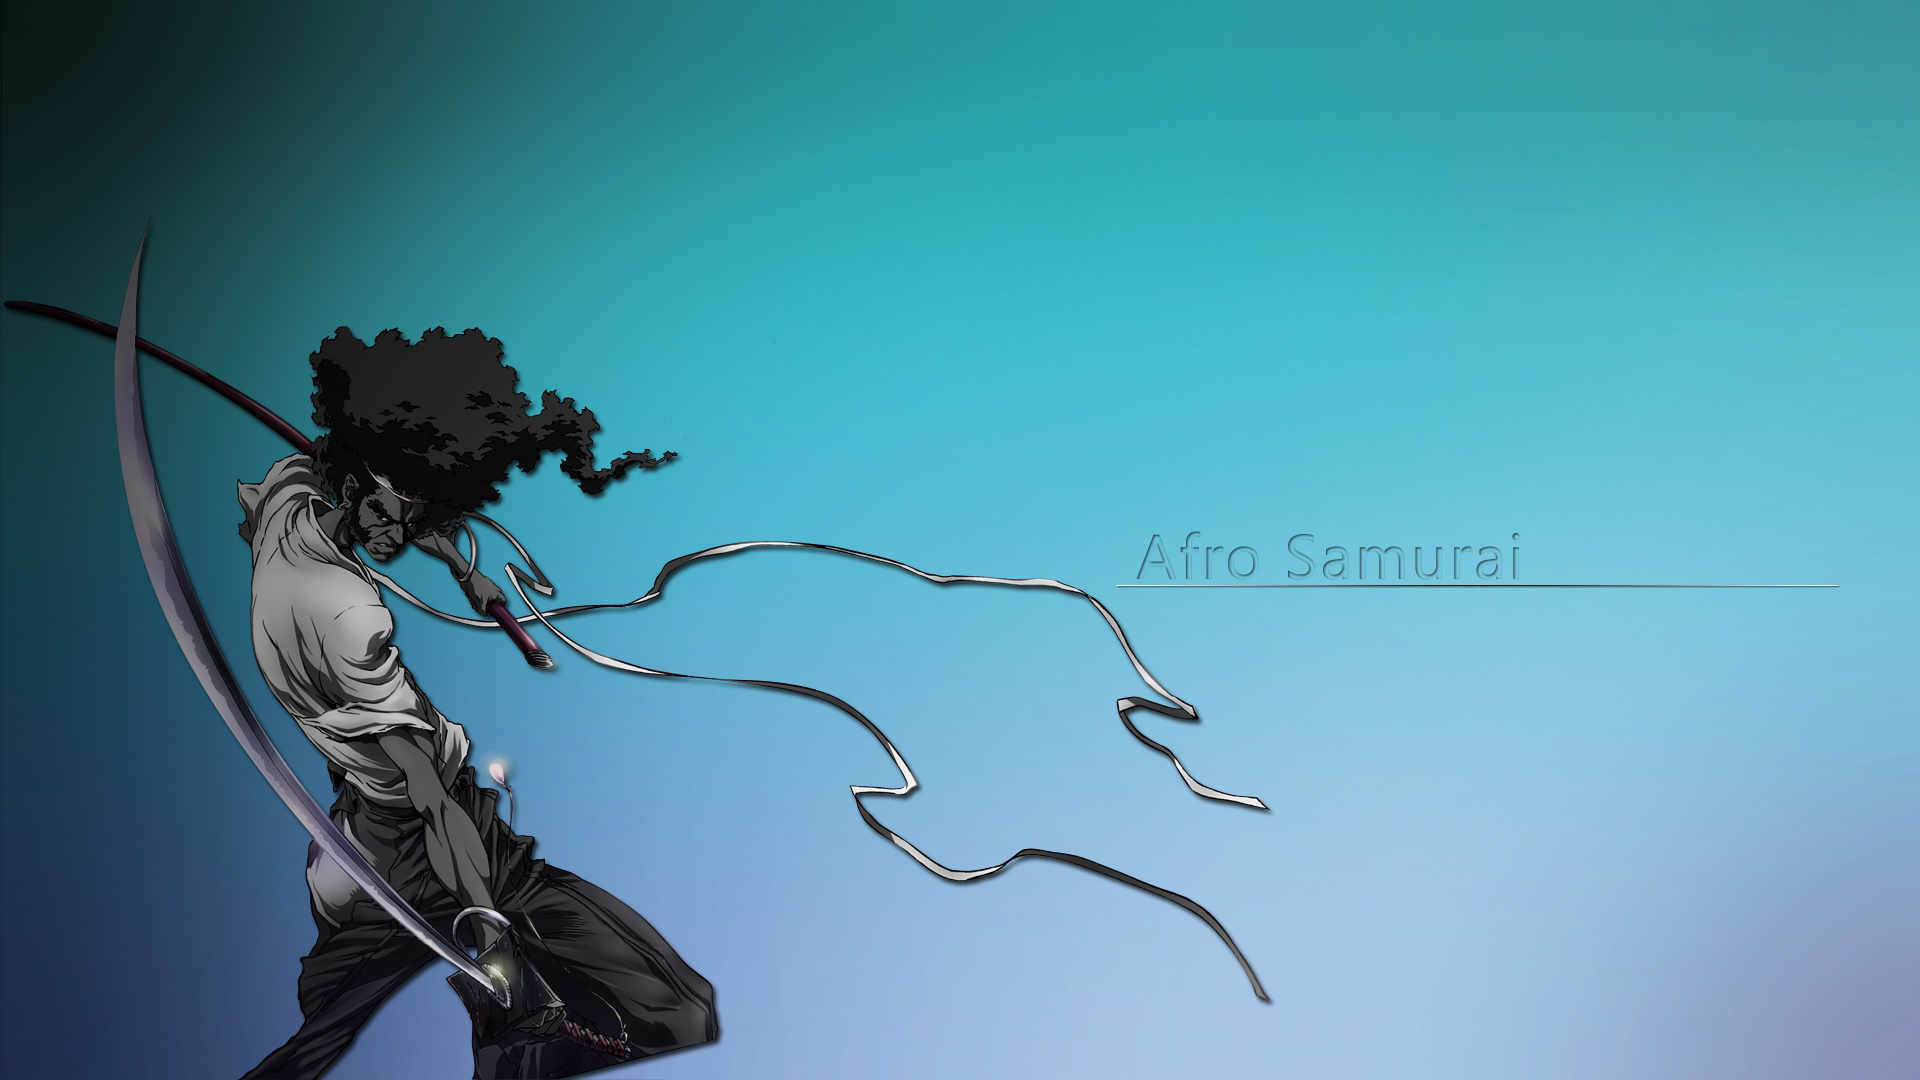 Afro Samurai Wallpaper Hd wallpaper   715131 1920x1080